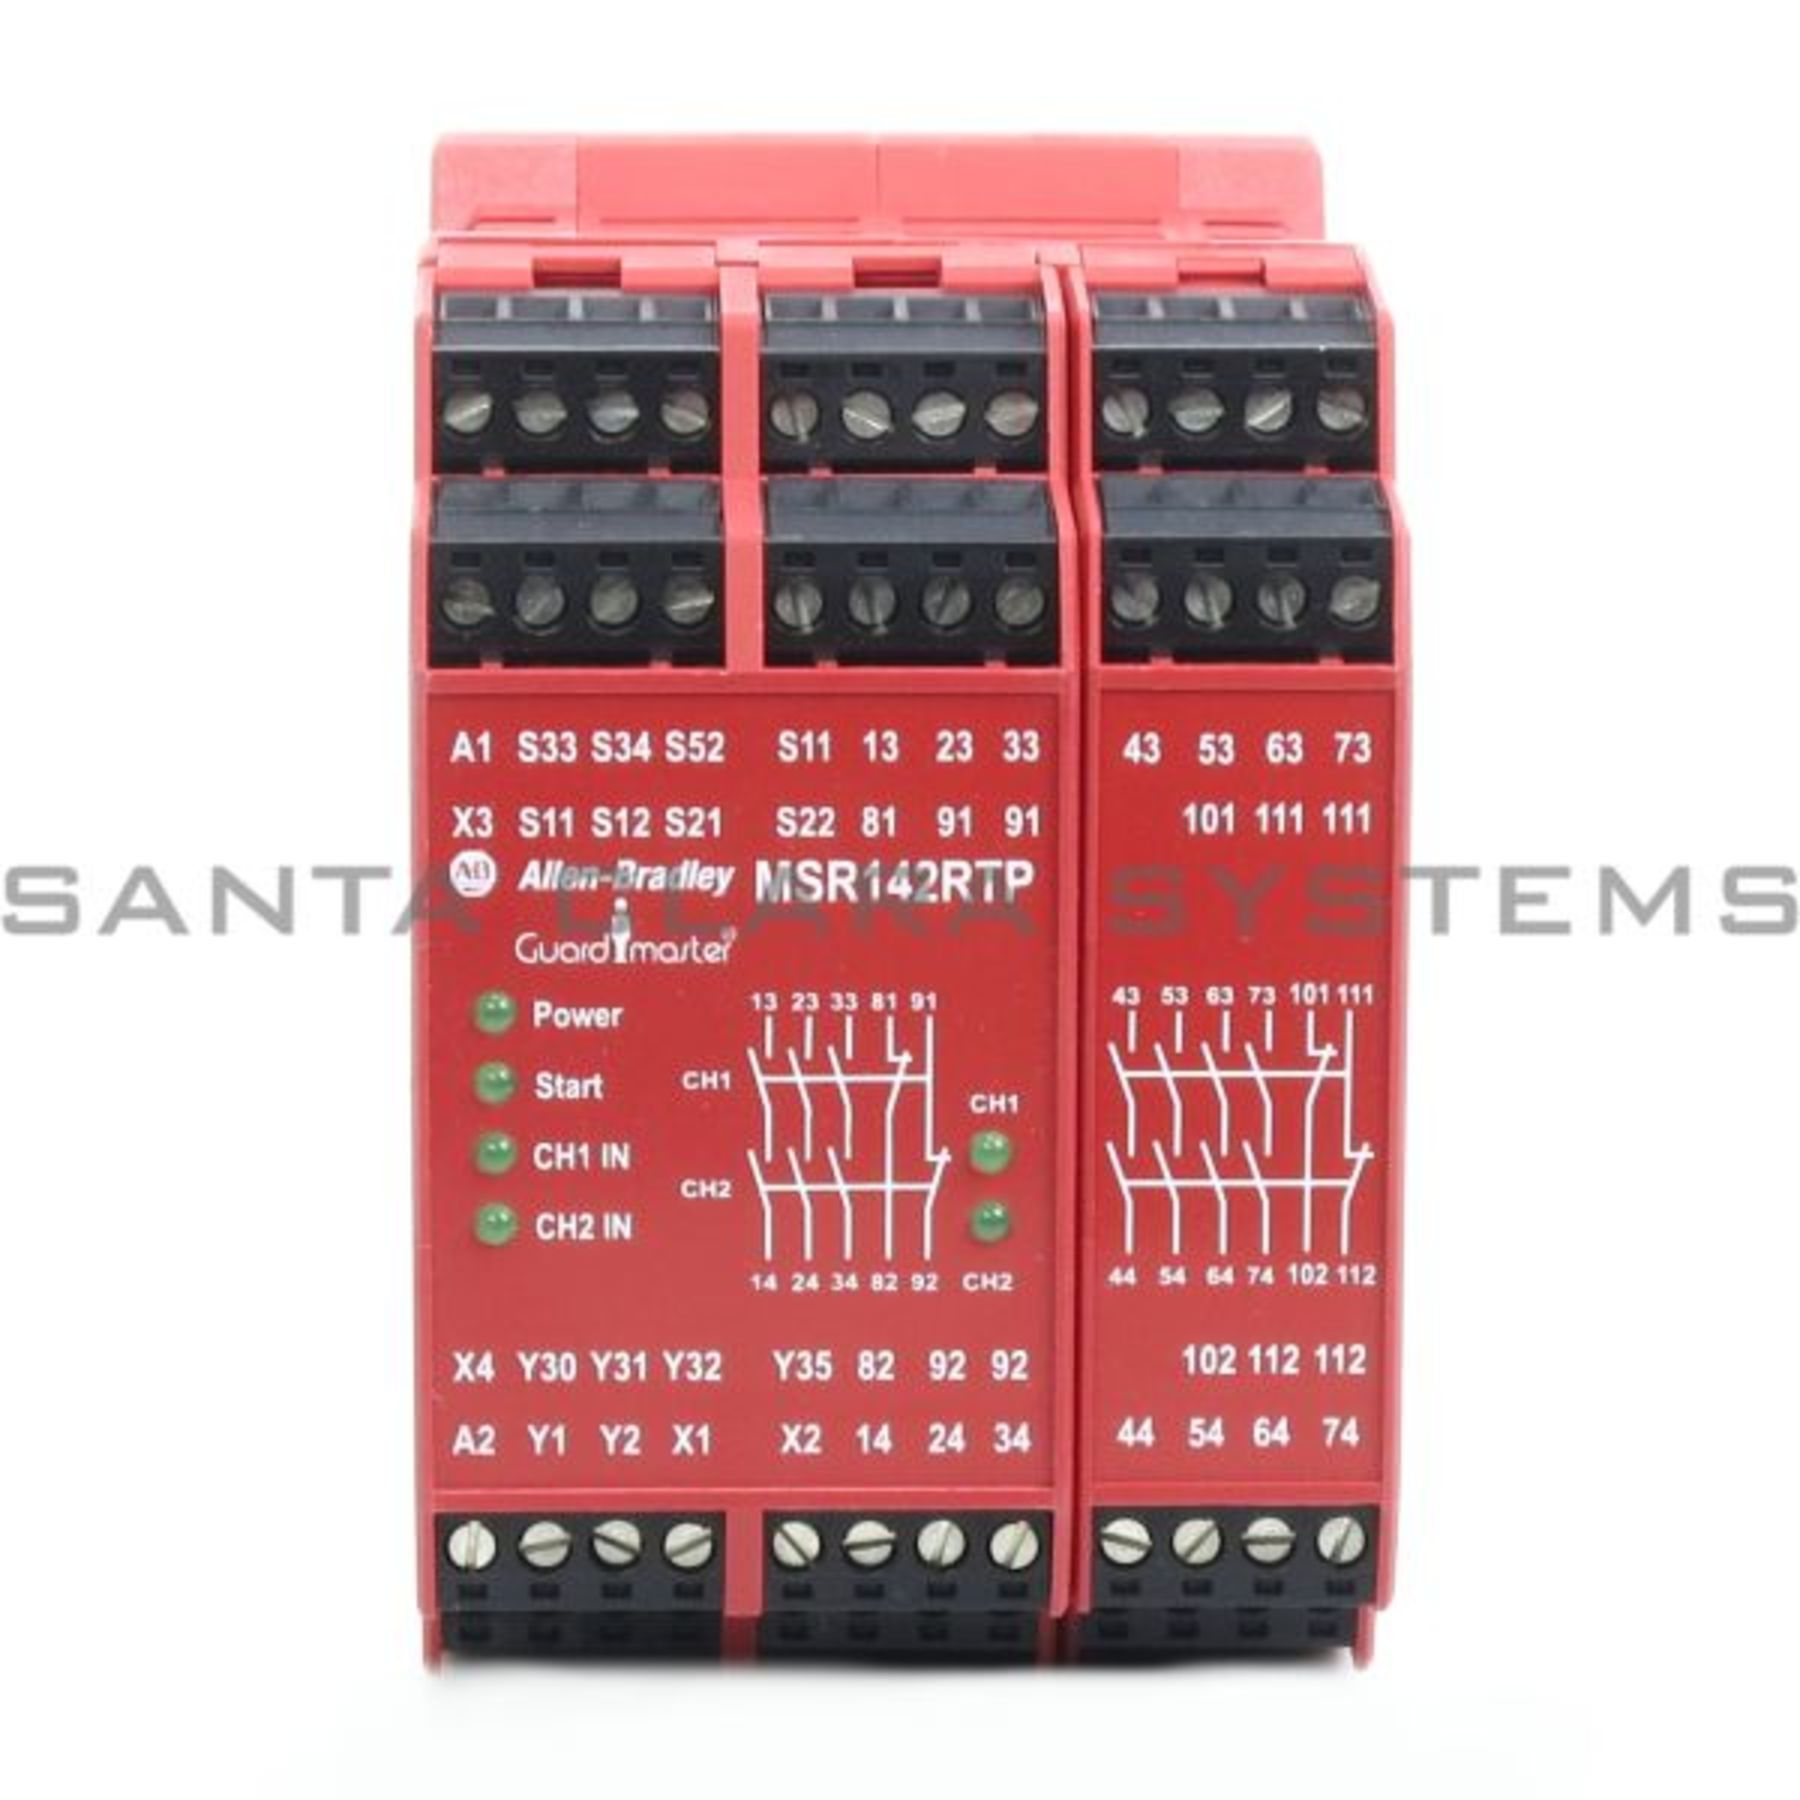 440r G23216 Allen Bradley In Stock And Ready To Ship Santa Clara Basic Safety Relay Circuit Guardmaster Msr142 Product Image